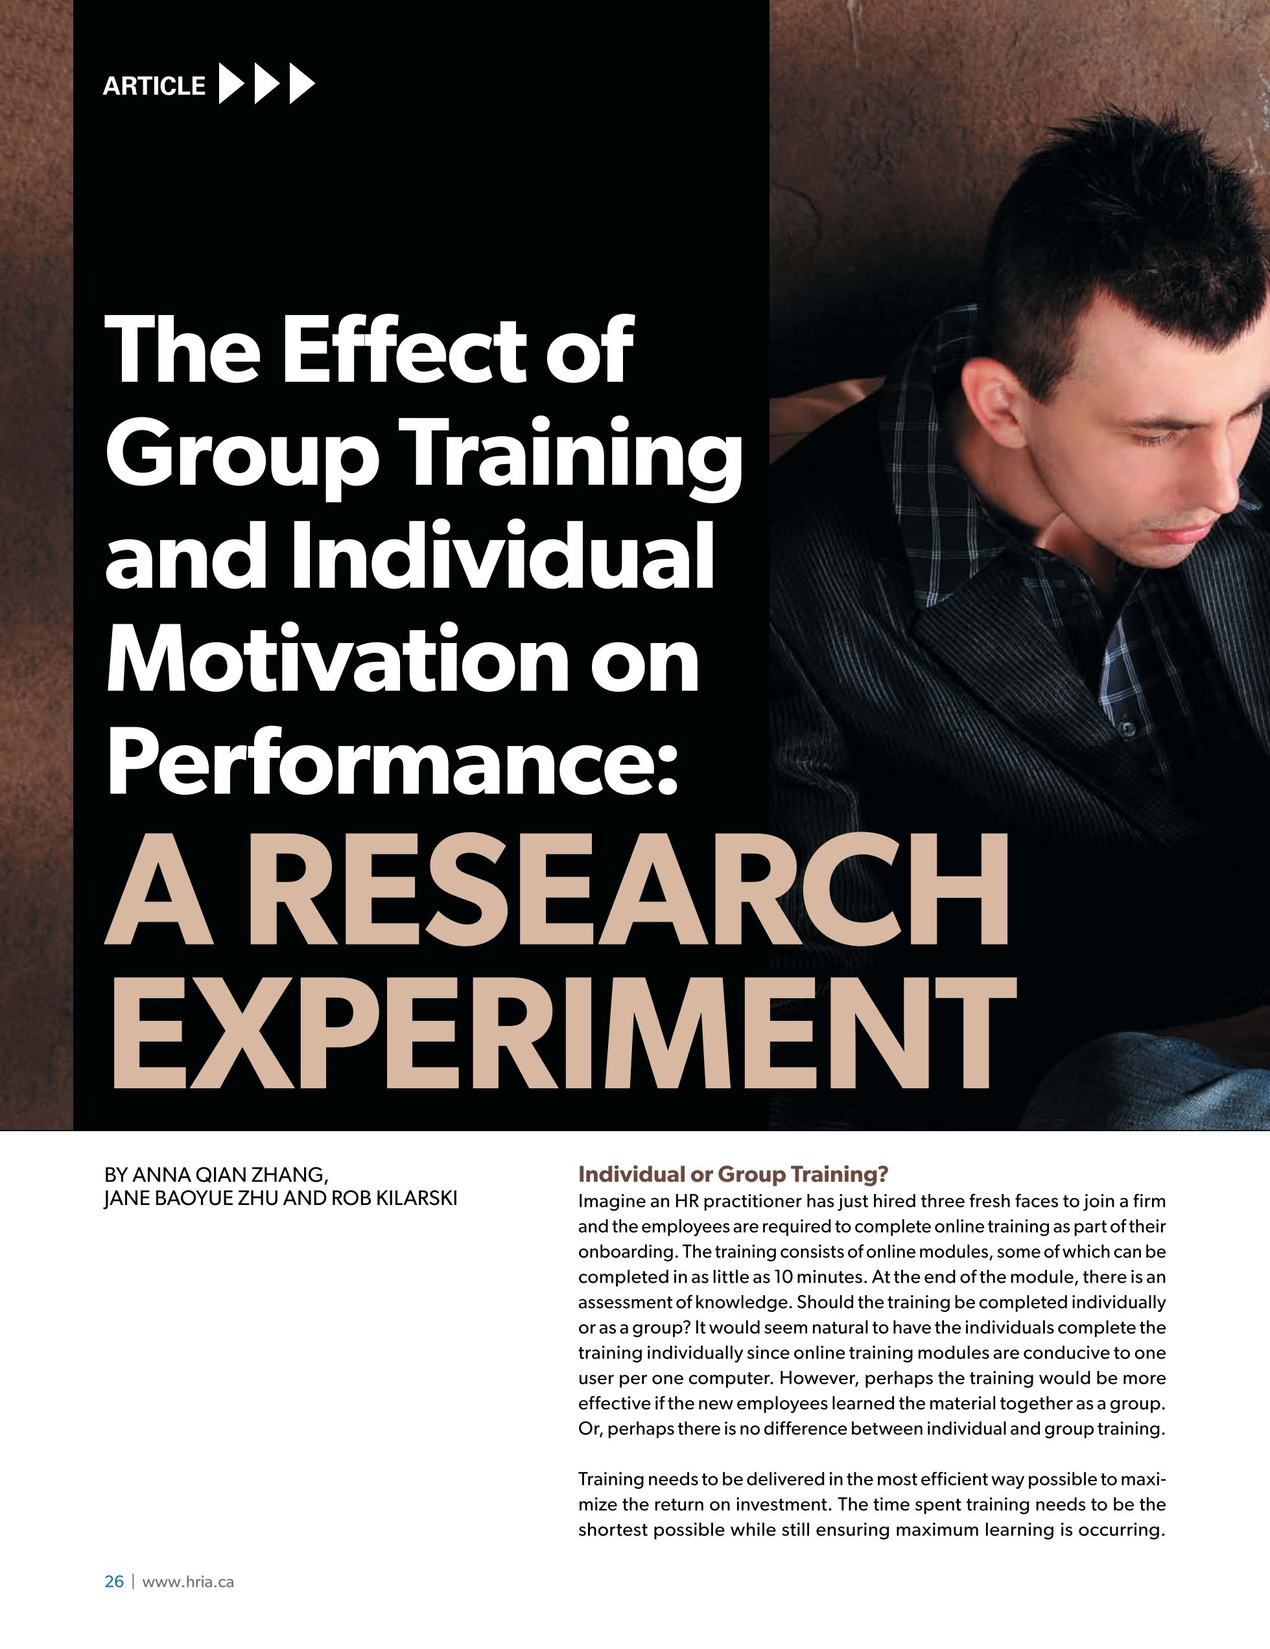 The Effect of Group Training and Individual Motivation of Performance cover